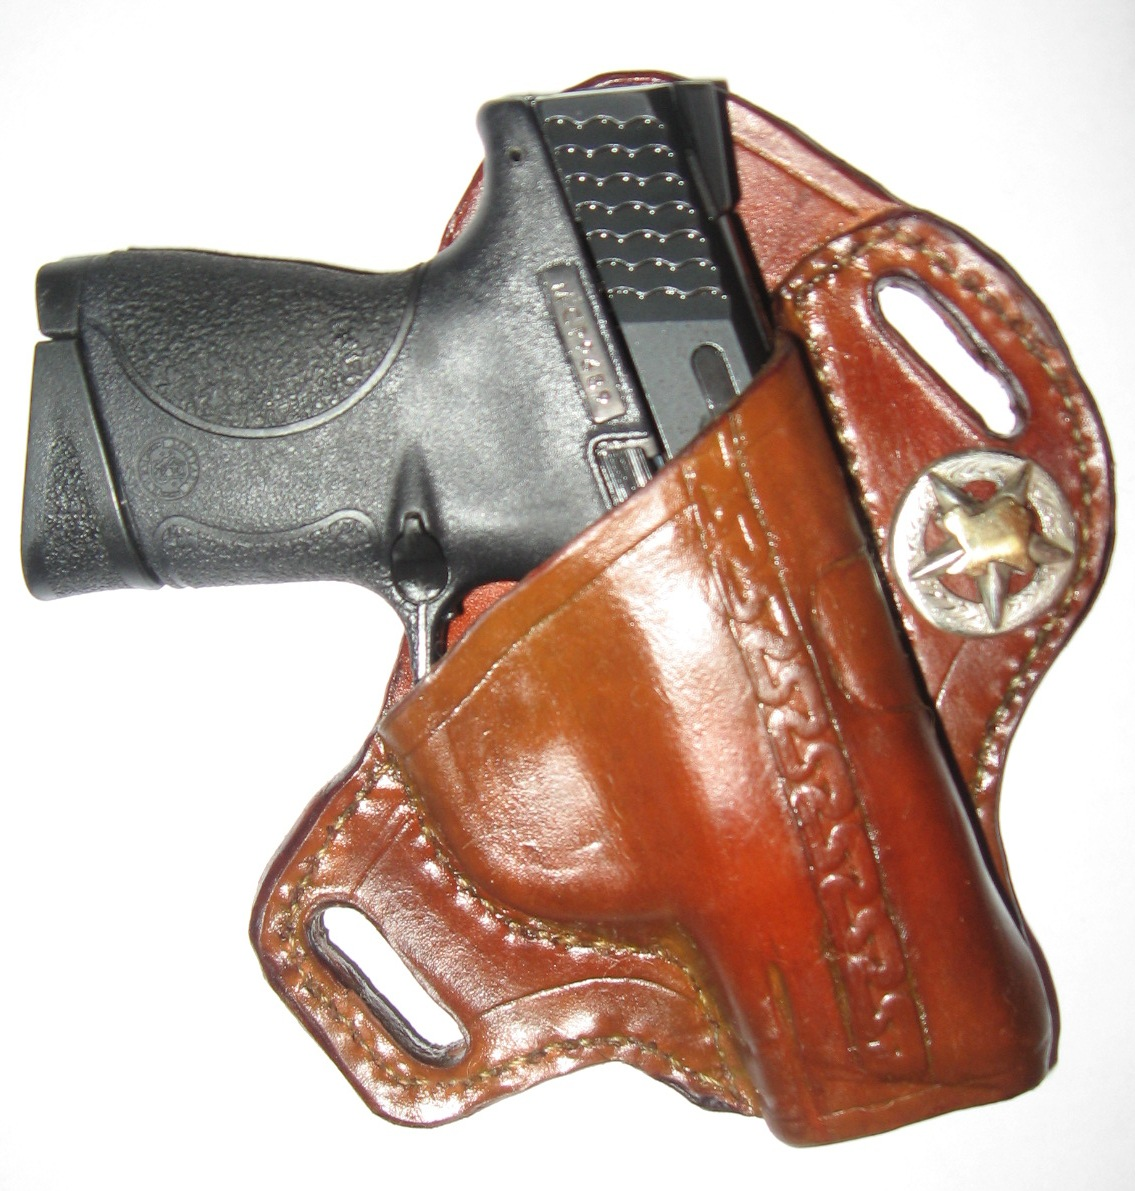 Gentlemanly holster for my XD-img_0004.jpg